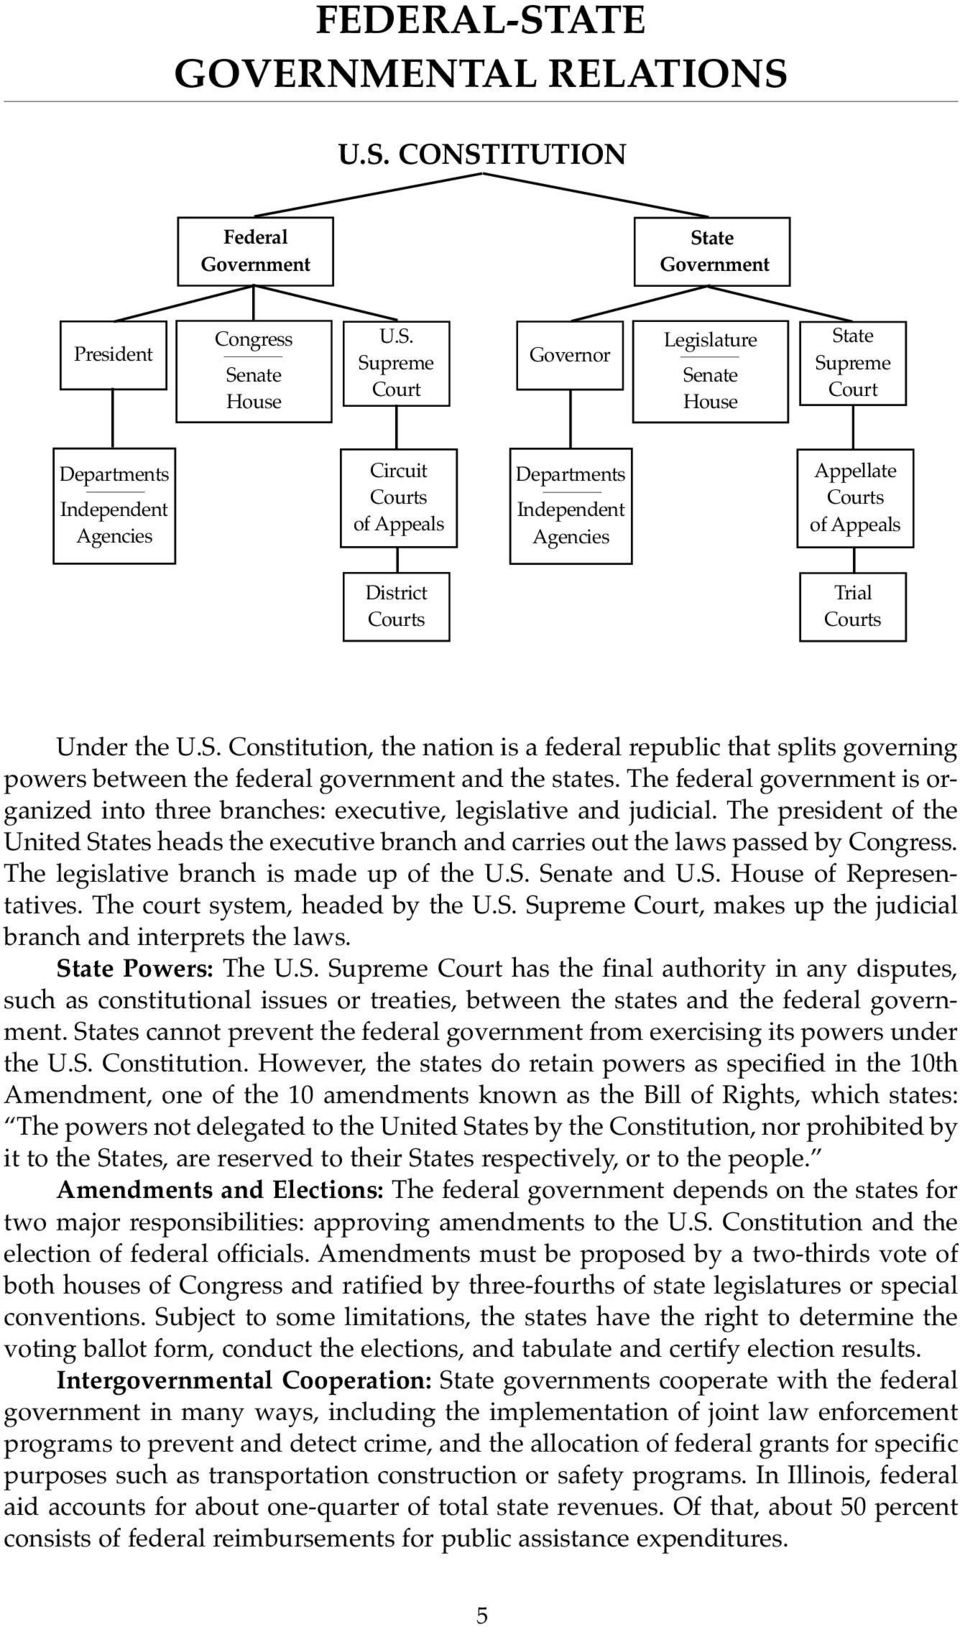 U.S. CONSTITUTION Federal Government State Government President Congress Senate House U.S. Supreme Court Governor Legislature Senate House State Supreme Court Departments Independent Agencies Circuit